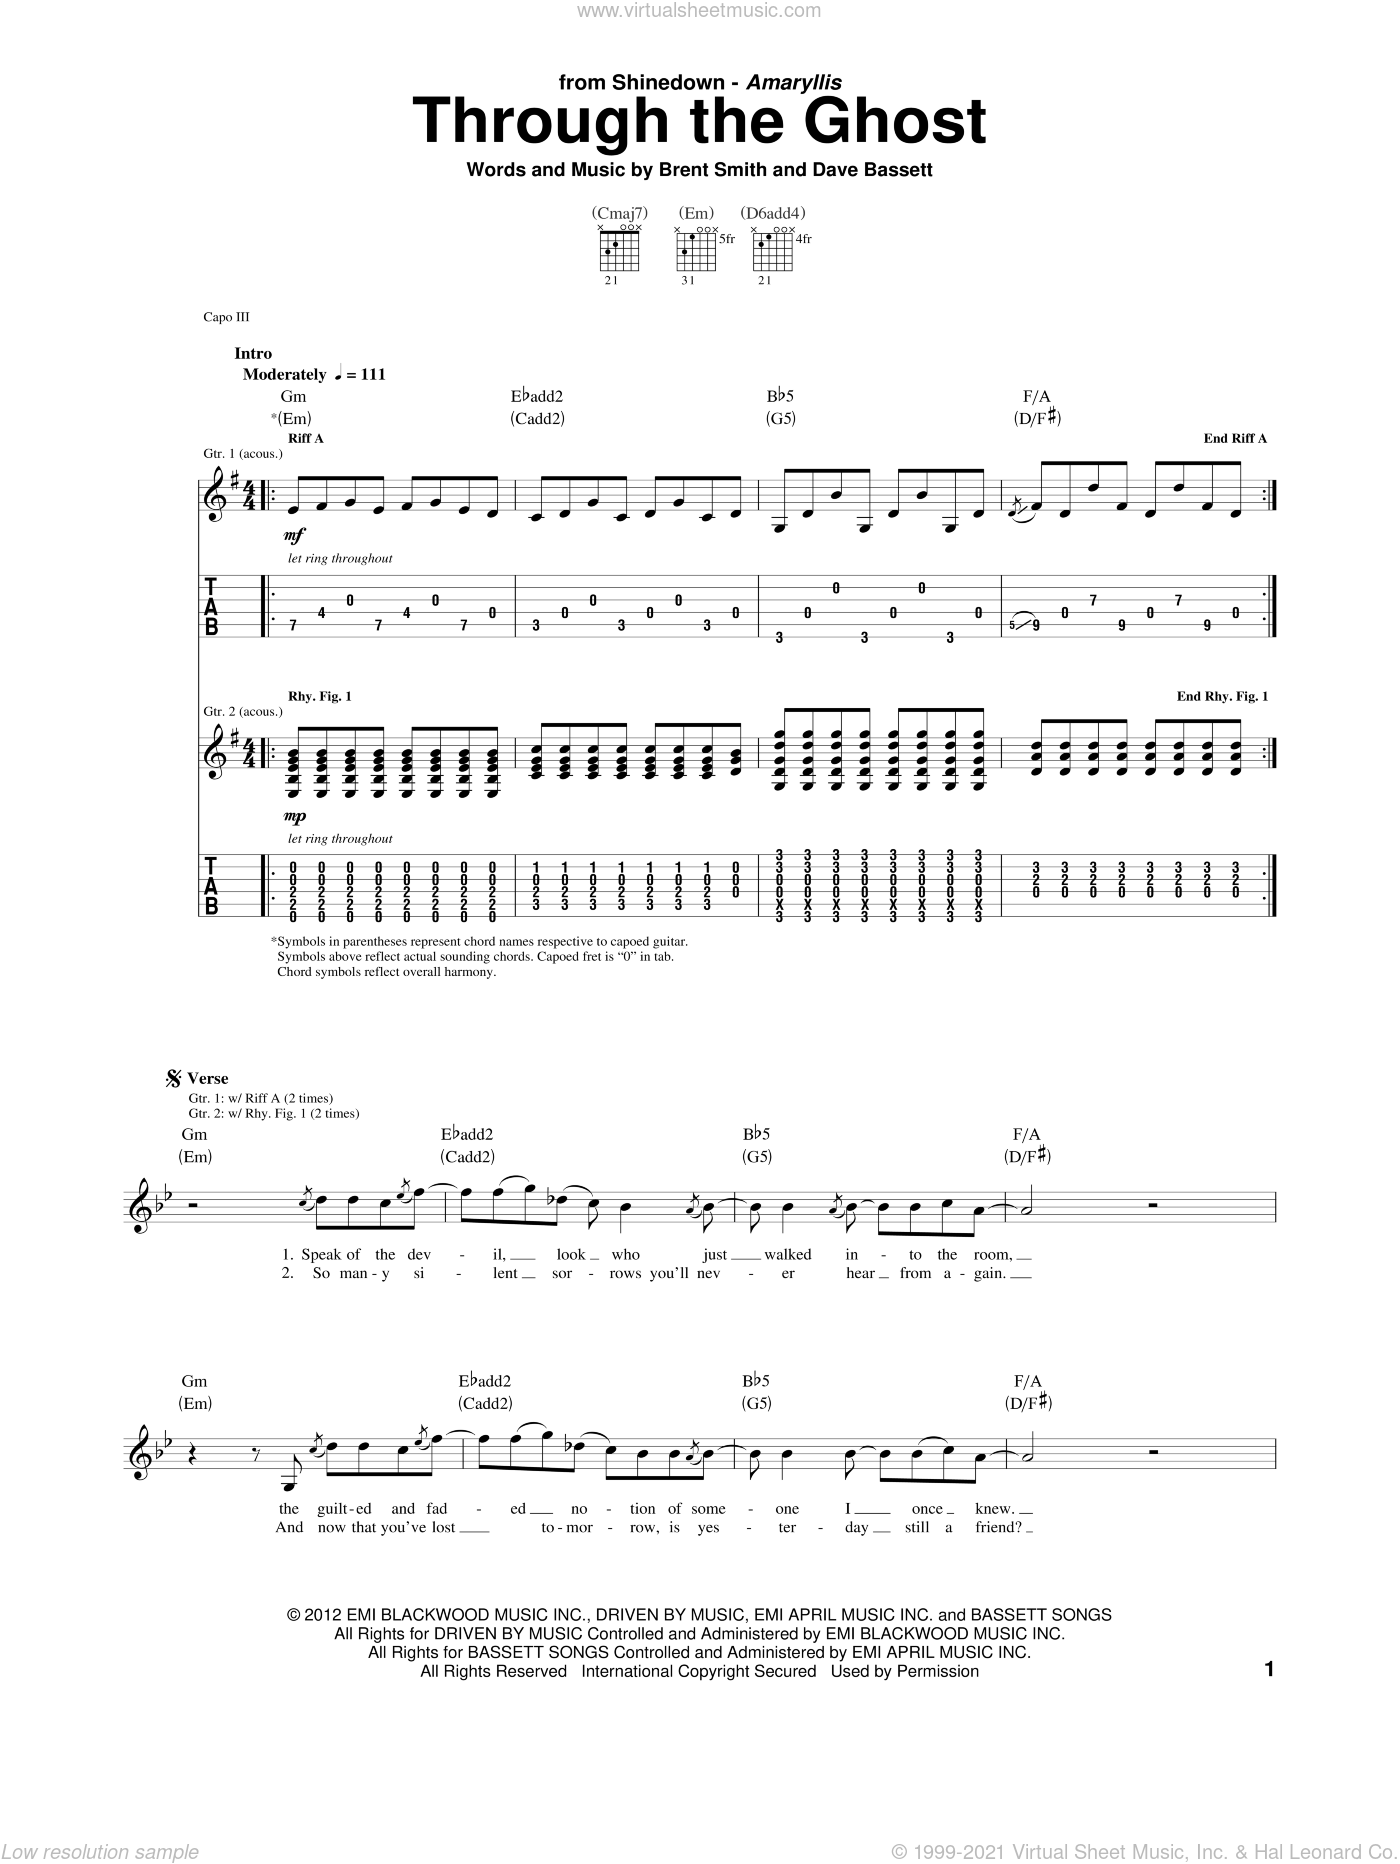 Through The Ghost sheet music for guitar (tablature) by Shinedown, Brent Smith and Dave Bassett, intermediate skill level